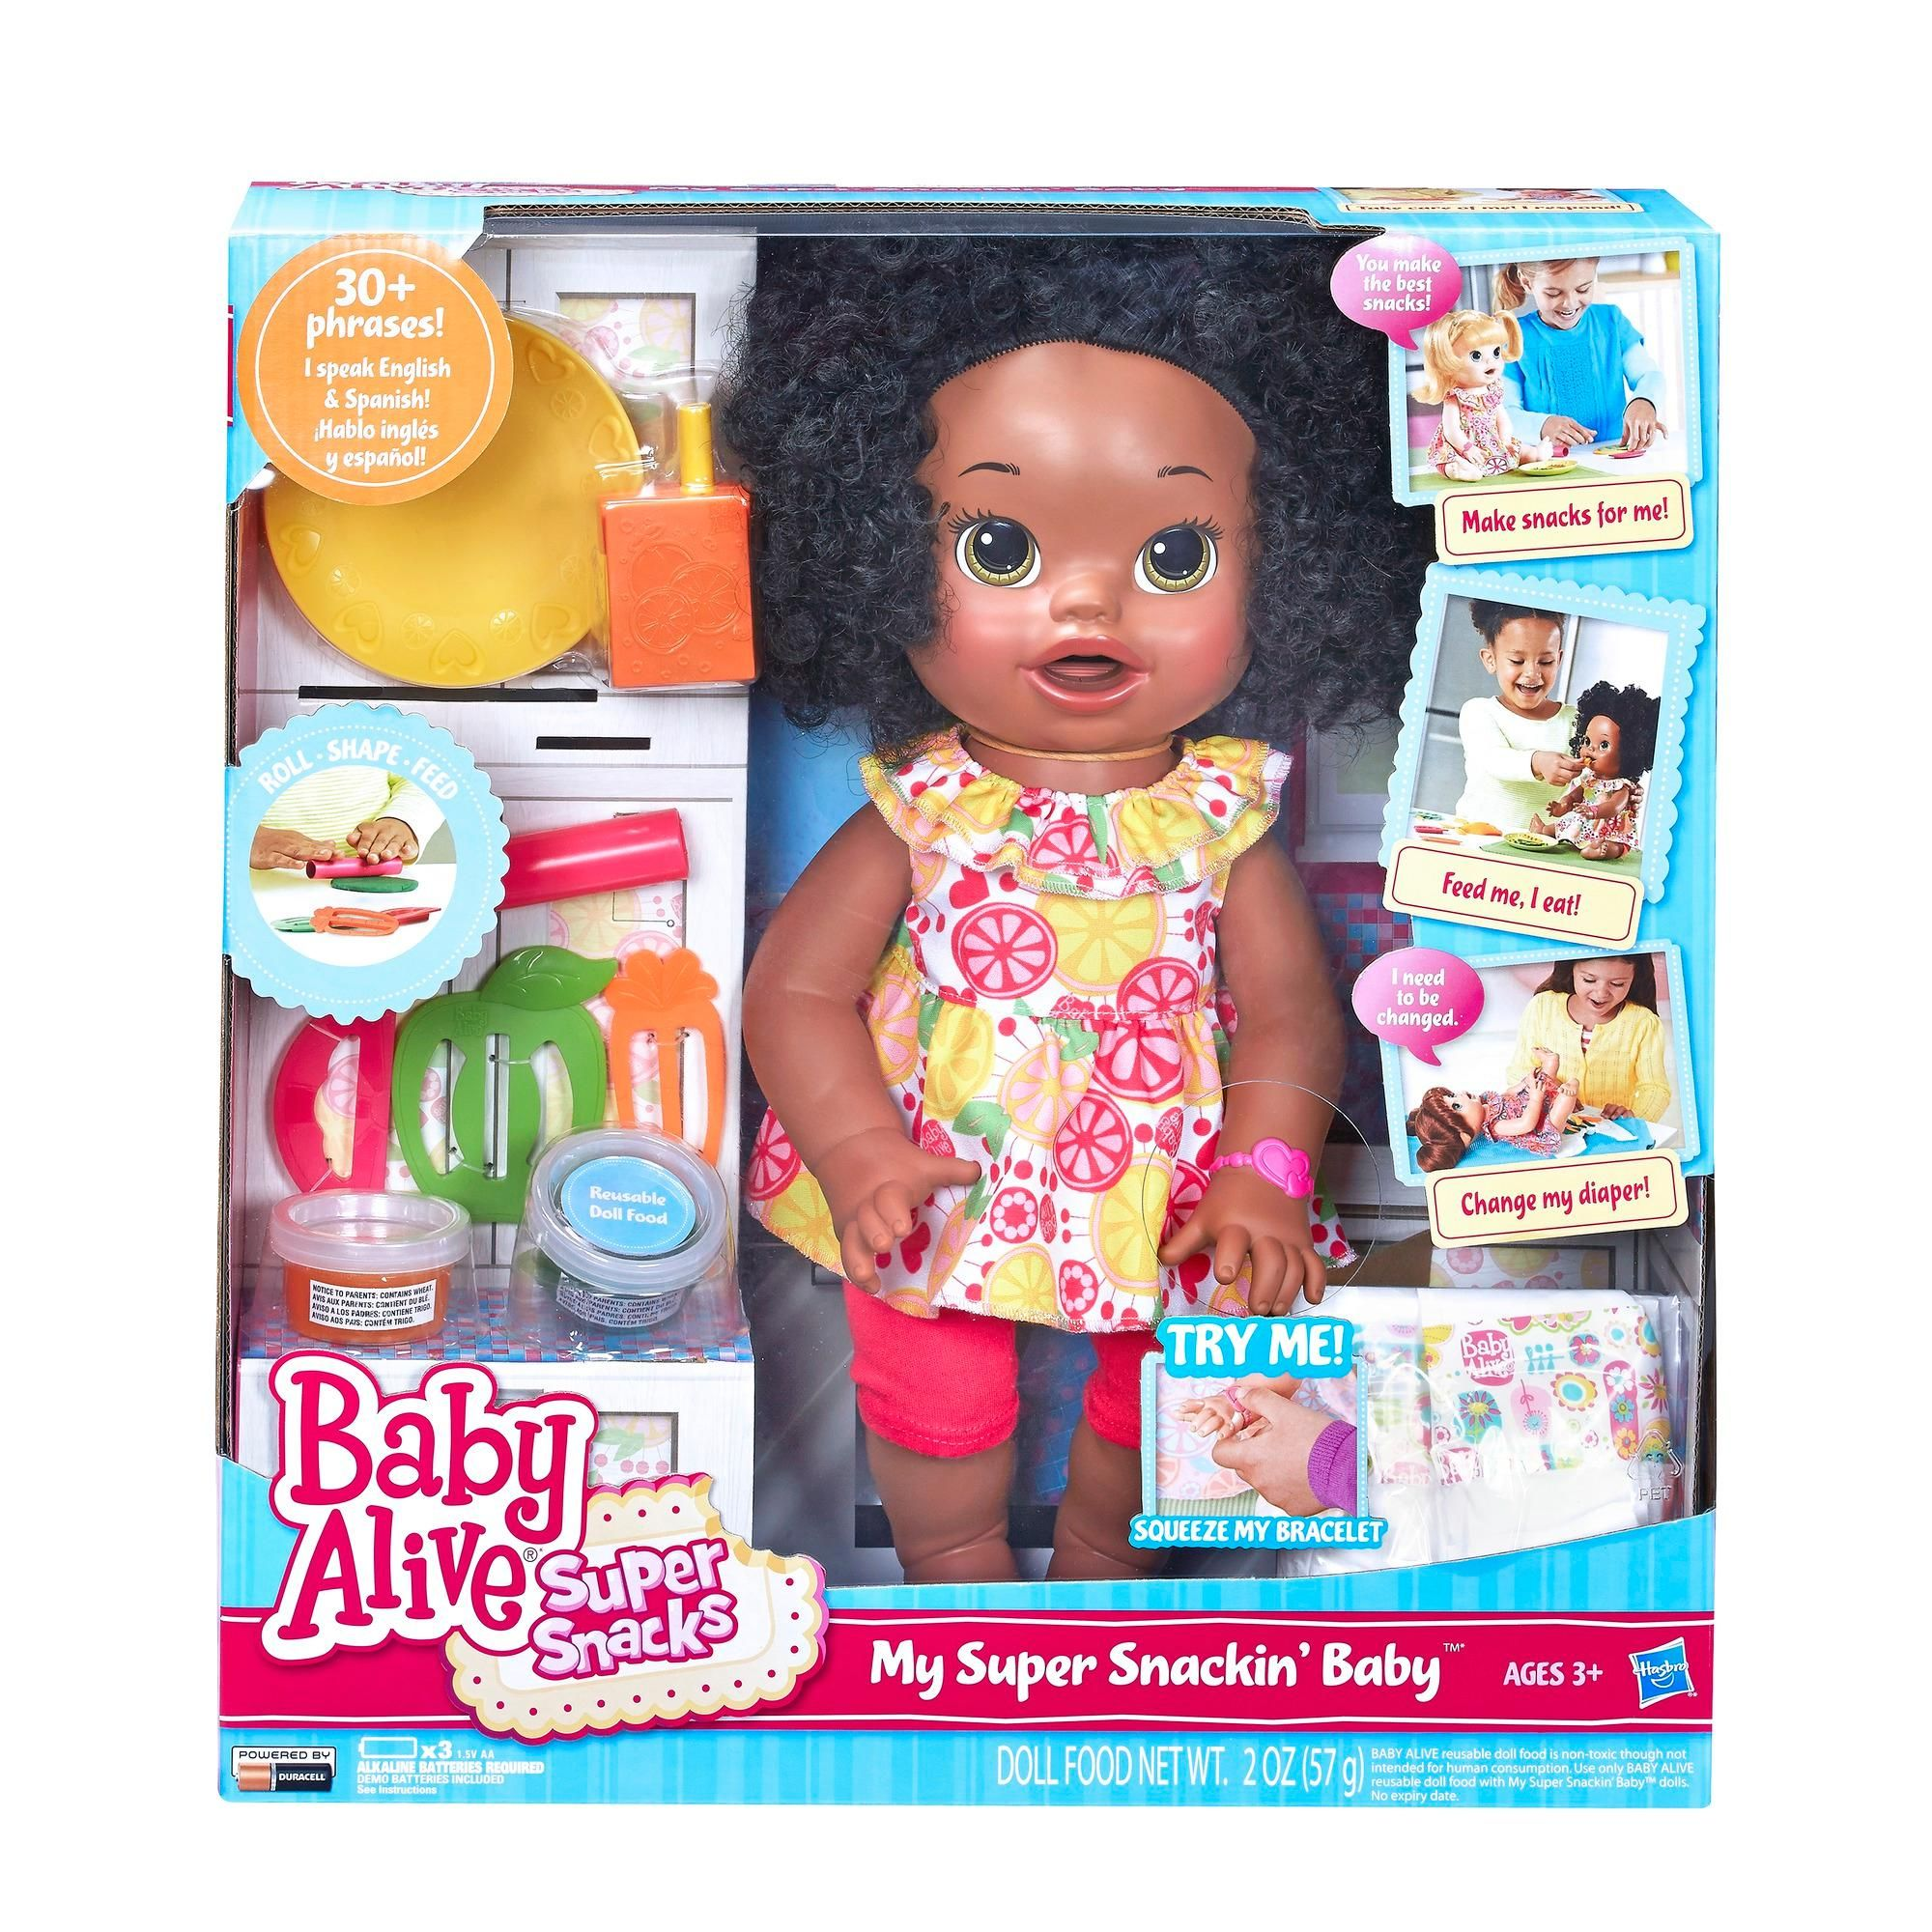 Robot Check Baby Alive Baby Alive Dolls Baby Alive Food